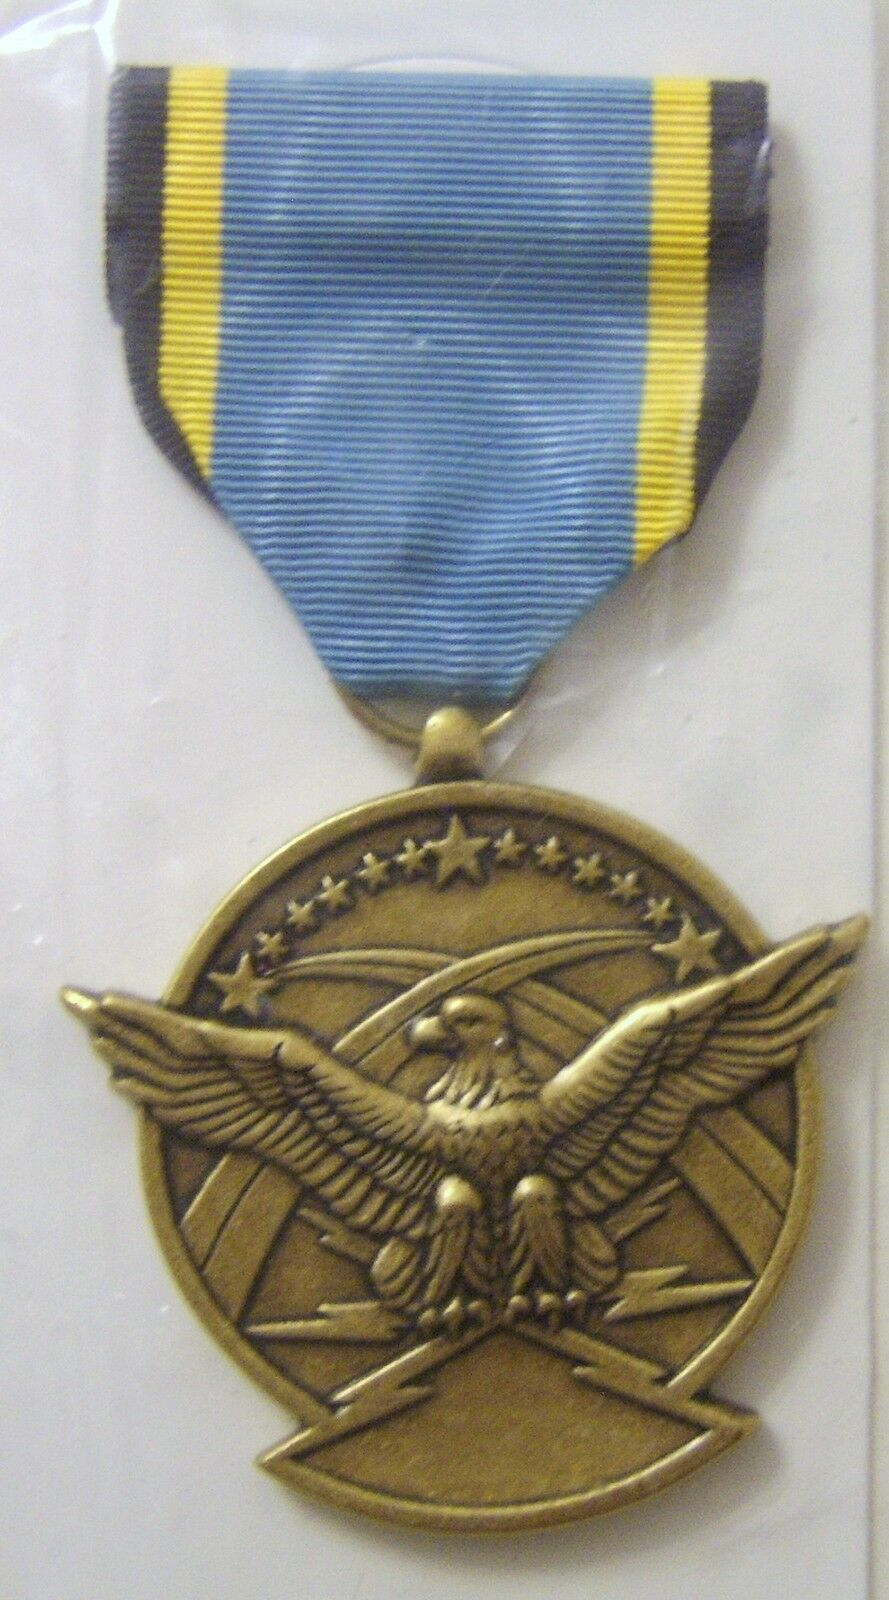 Primary image for U.S. AIR FORCE AERIAL ACHIEVEMENT MEDAL FULL SIZE - NIP:K3